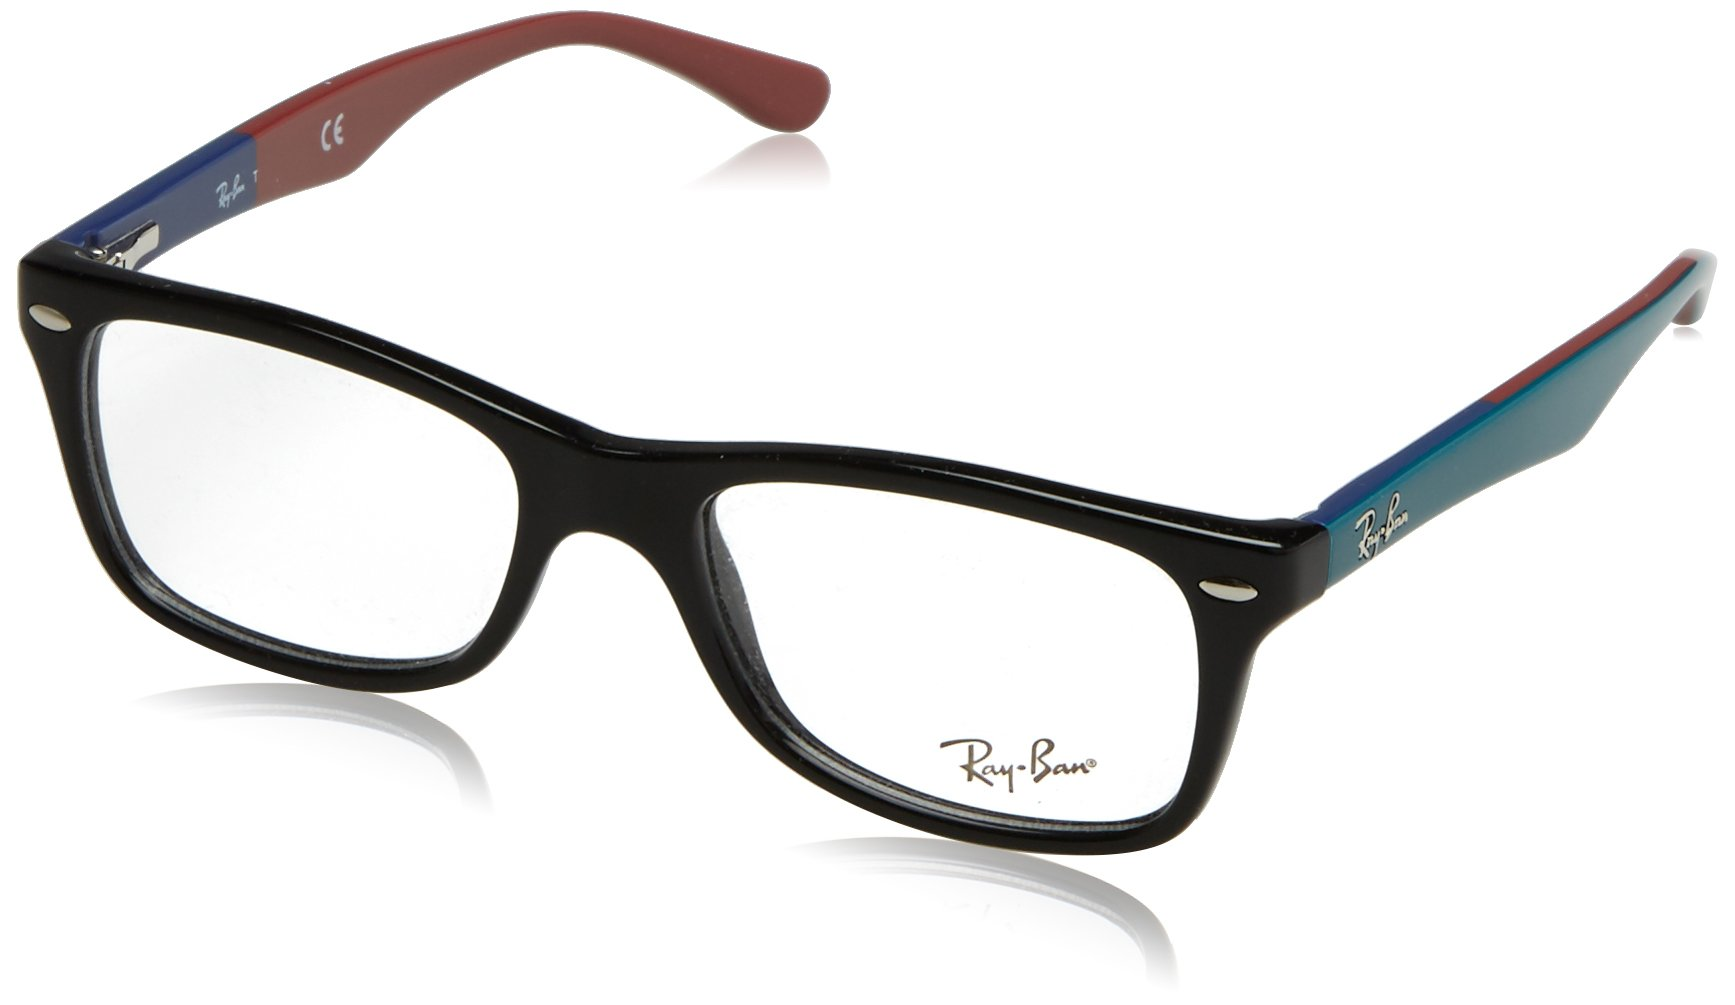 Ray-Ban Women's Rx5228 Square Eyeglasses,Top Black & Texture White,50 mm by Ray-Ban